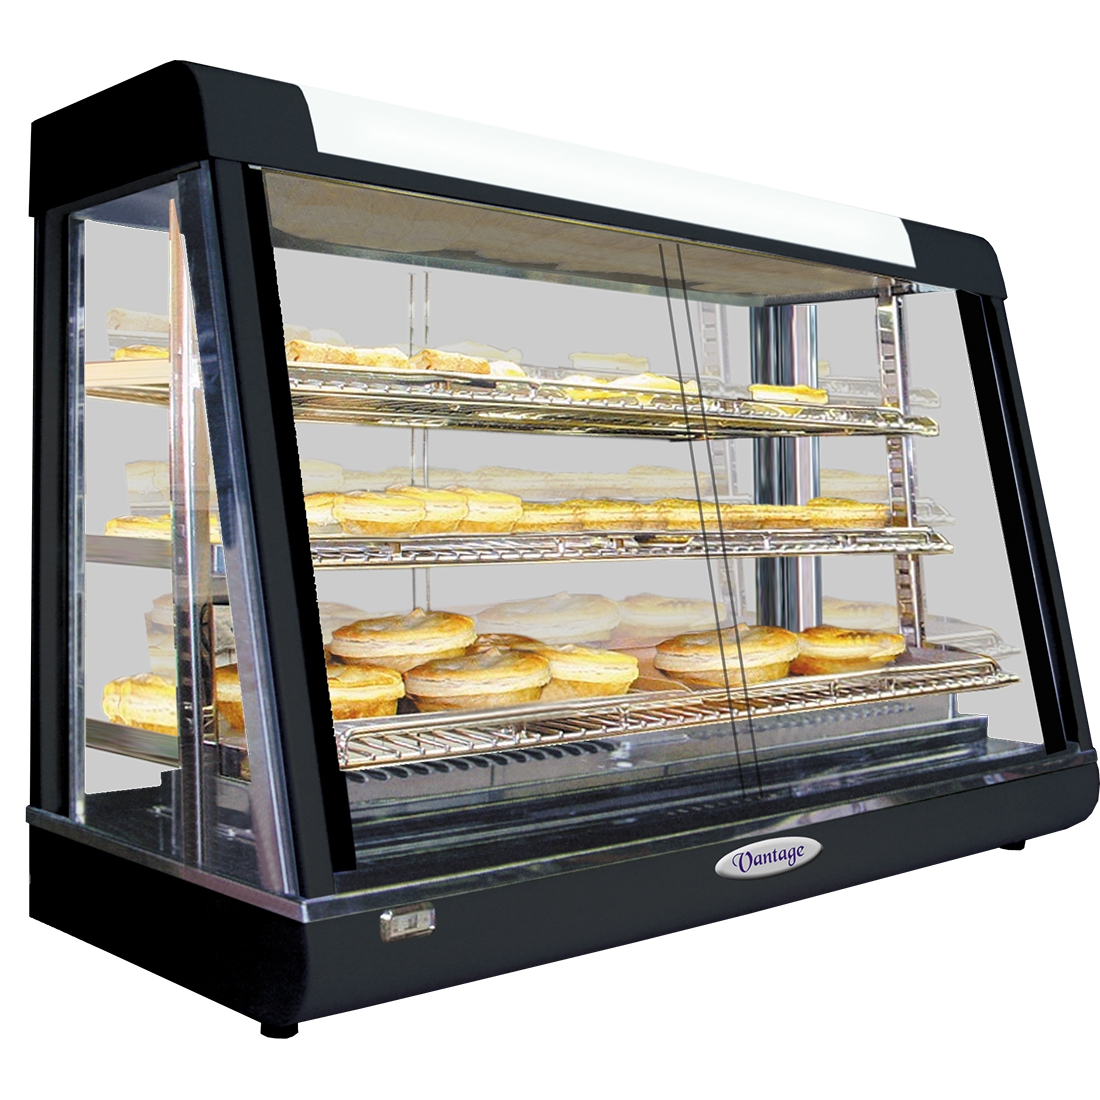 Pie Warmer & Hot Food Display - PW-RT/660/TG